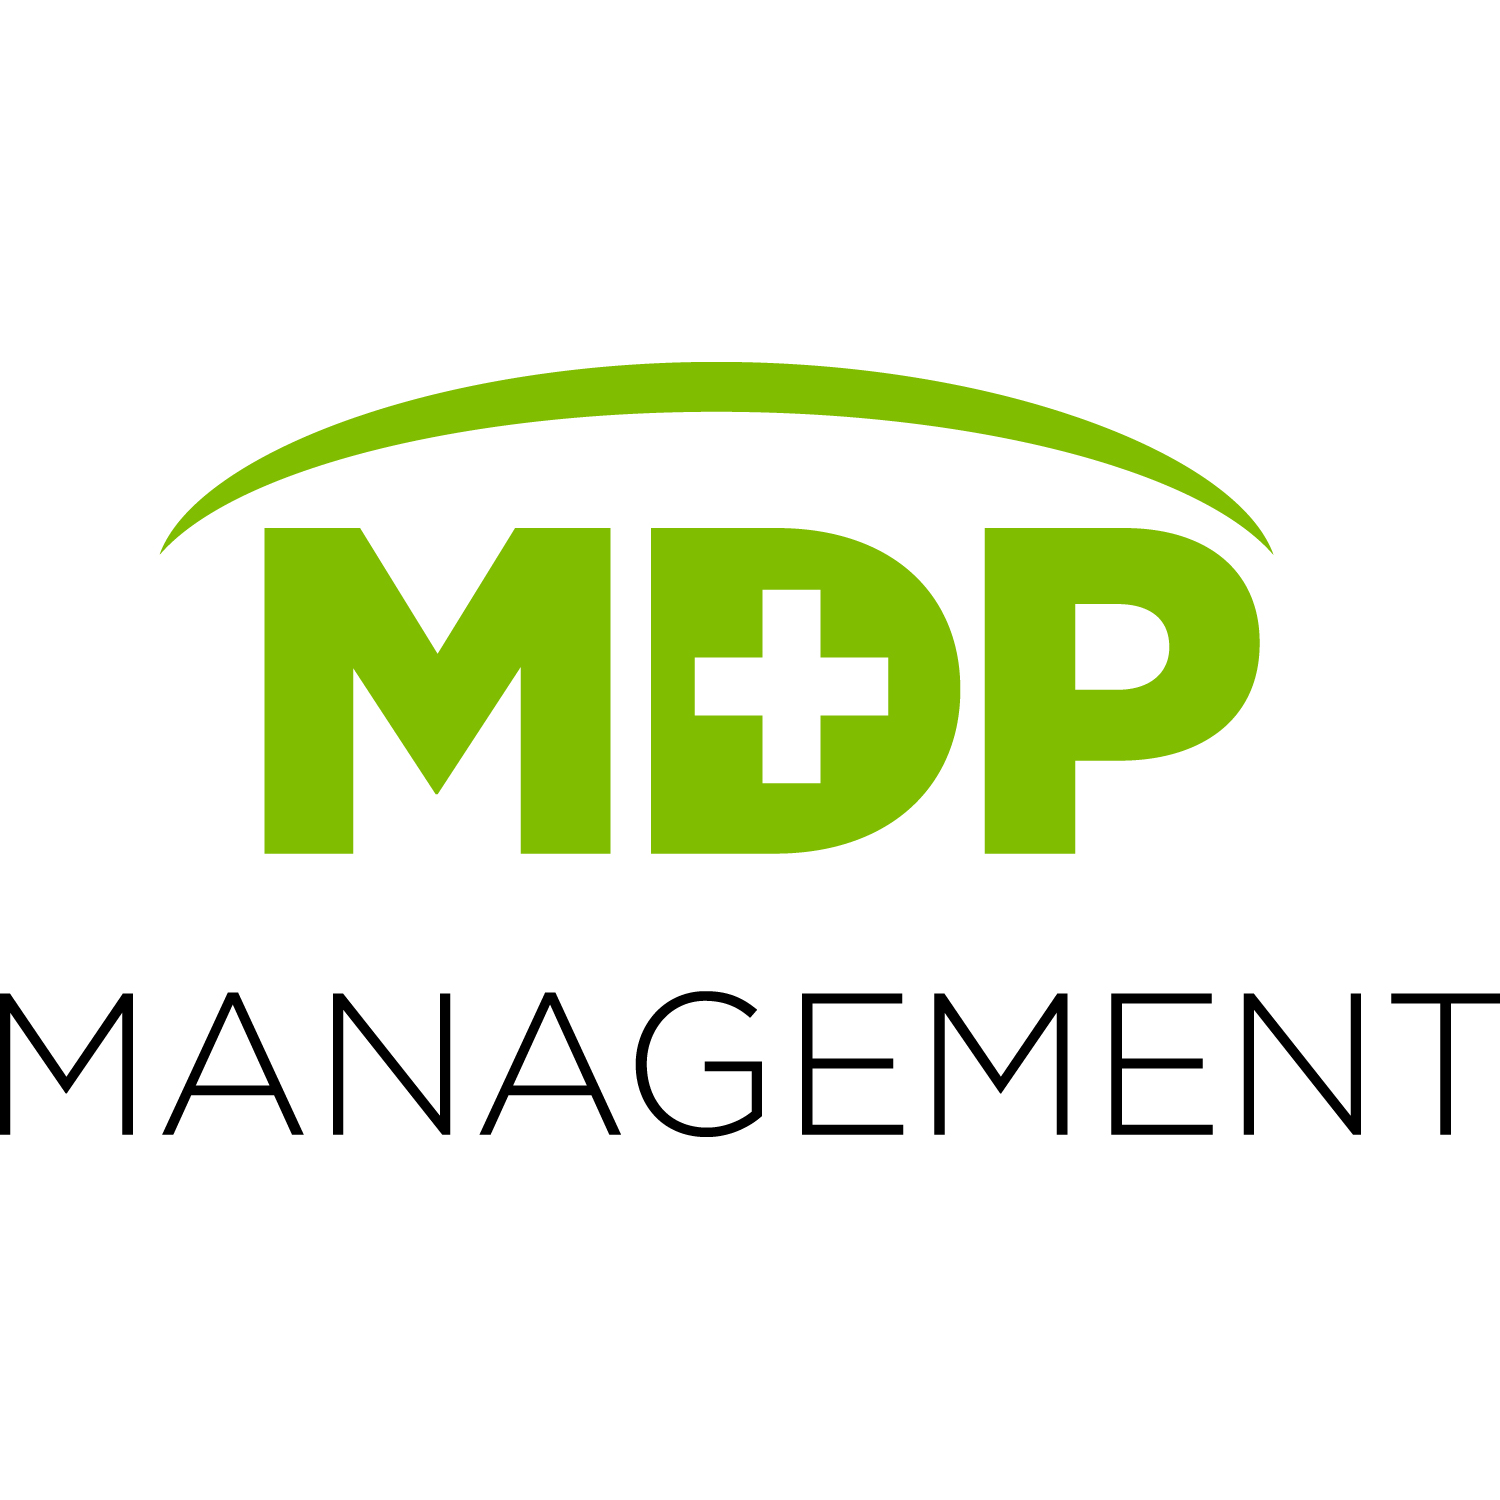 MDP Management image 1